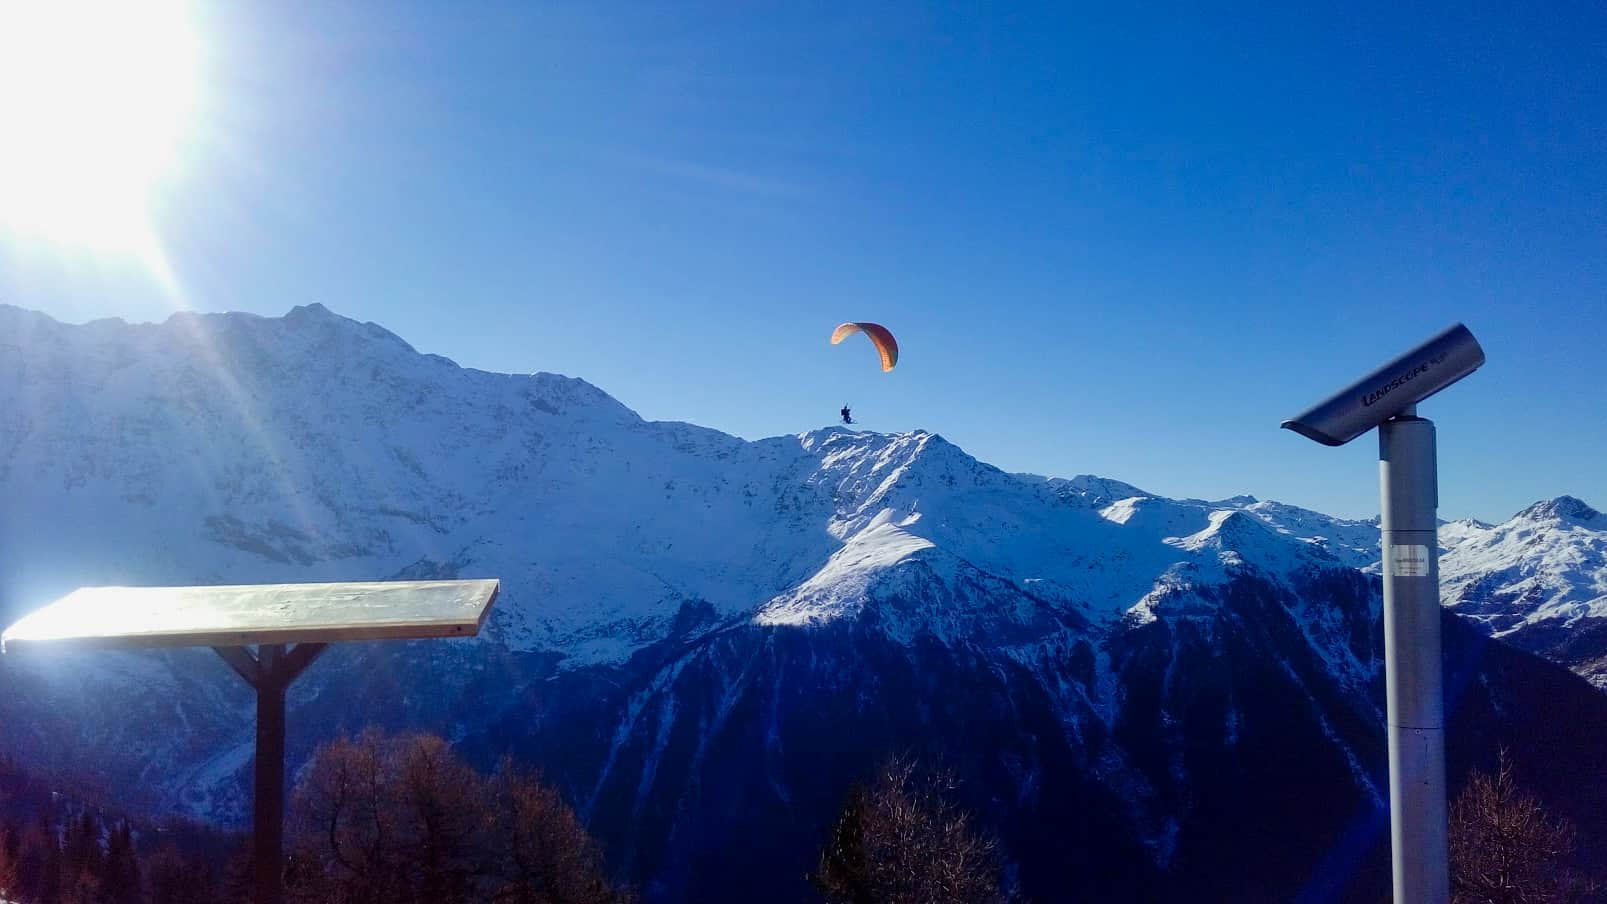 Parascender in Les Arcs with mountains and blue sky behind